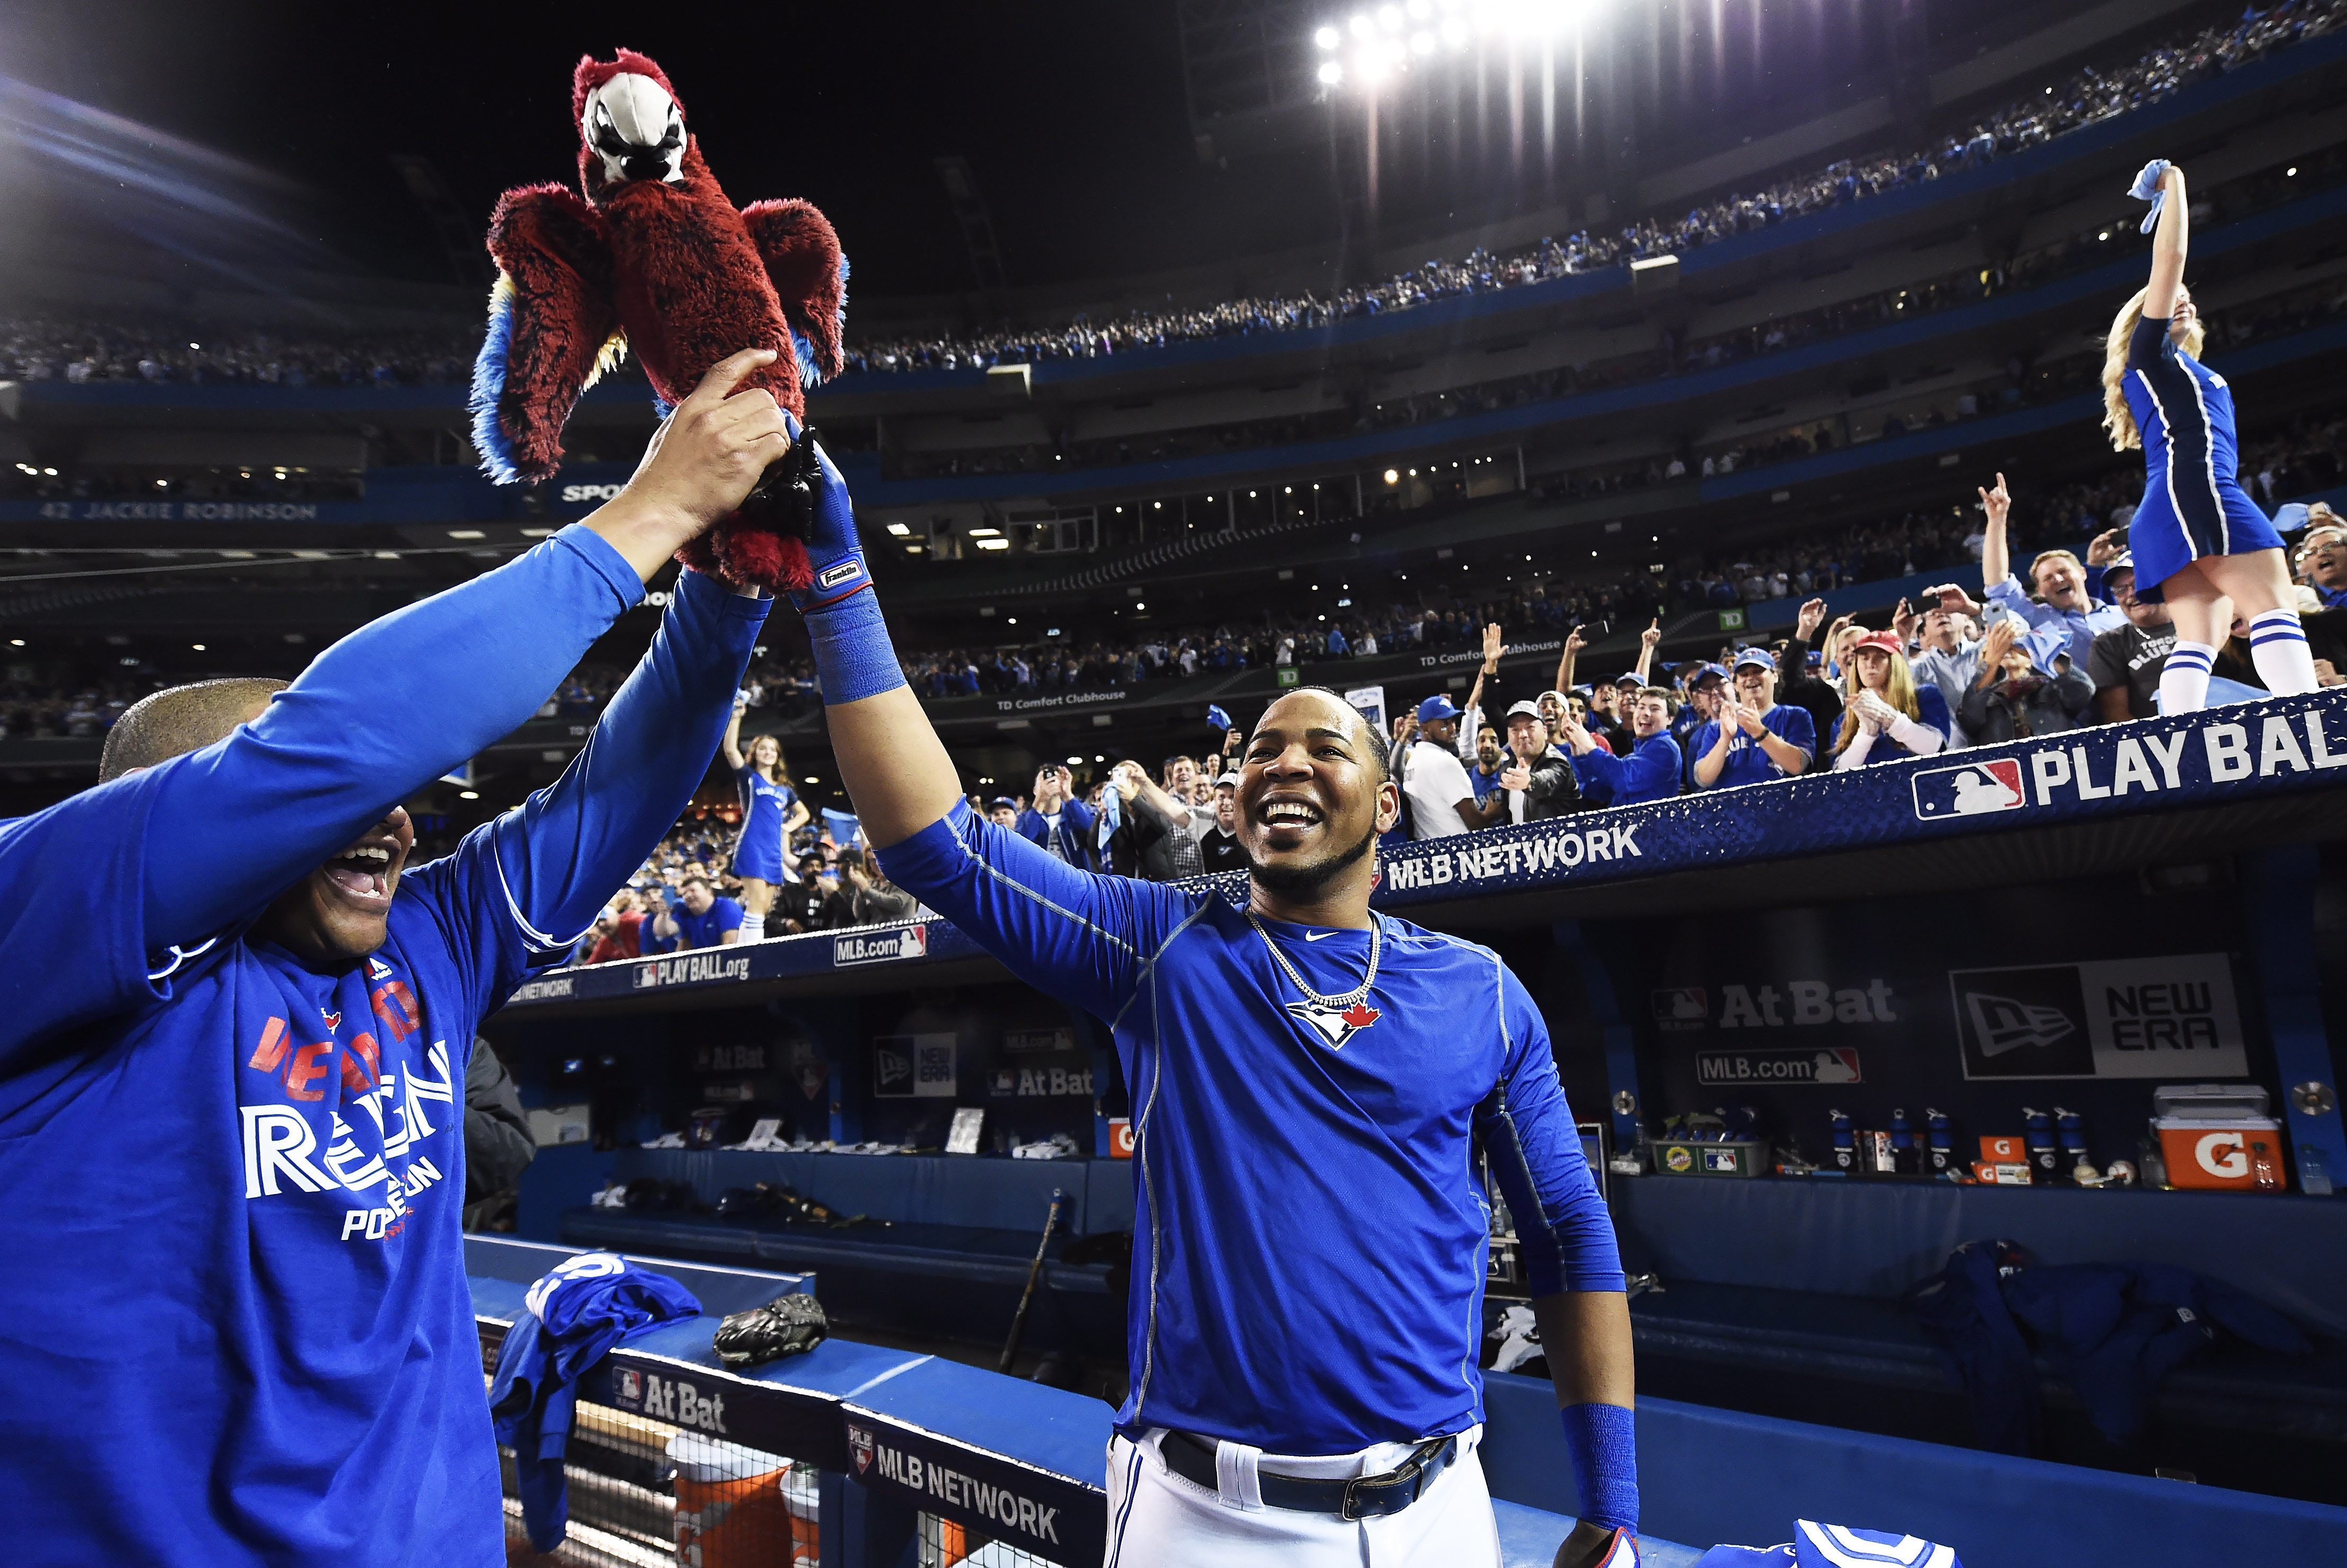 Toronto Blue Jays' Edwin Encarnacion celebrates his game winning walk-off three-run home run against the Baltimore Orioles with teammate Ezequiel Carrera during the 11th inning of an American League wild-card baseball game in Toronto, Tuesday, Oct. 4, 201